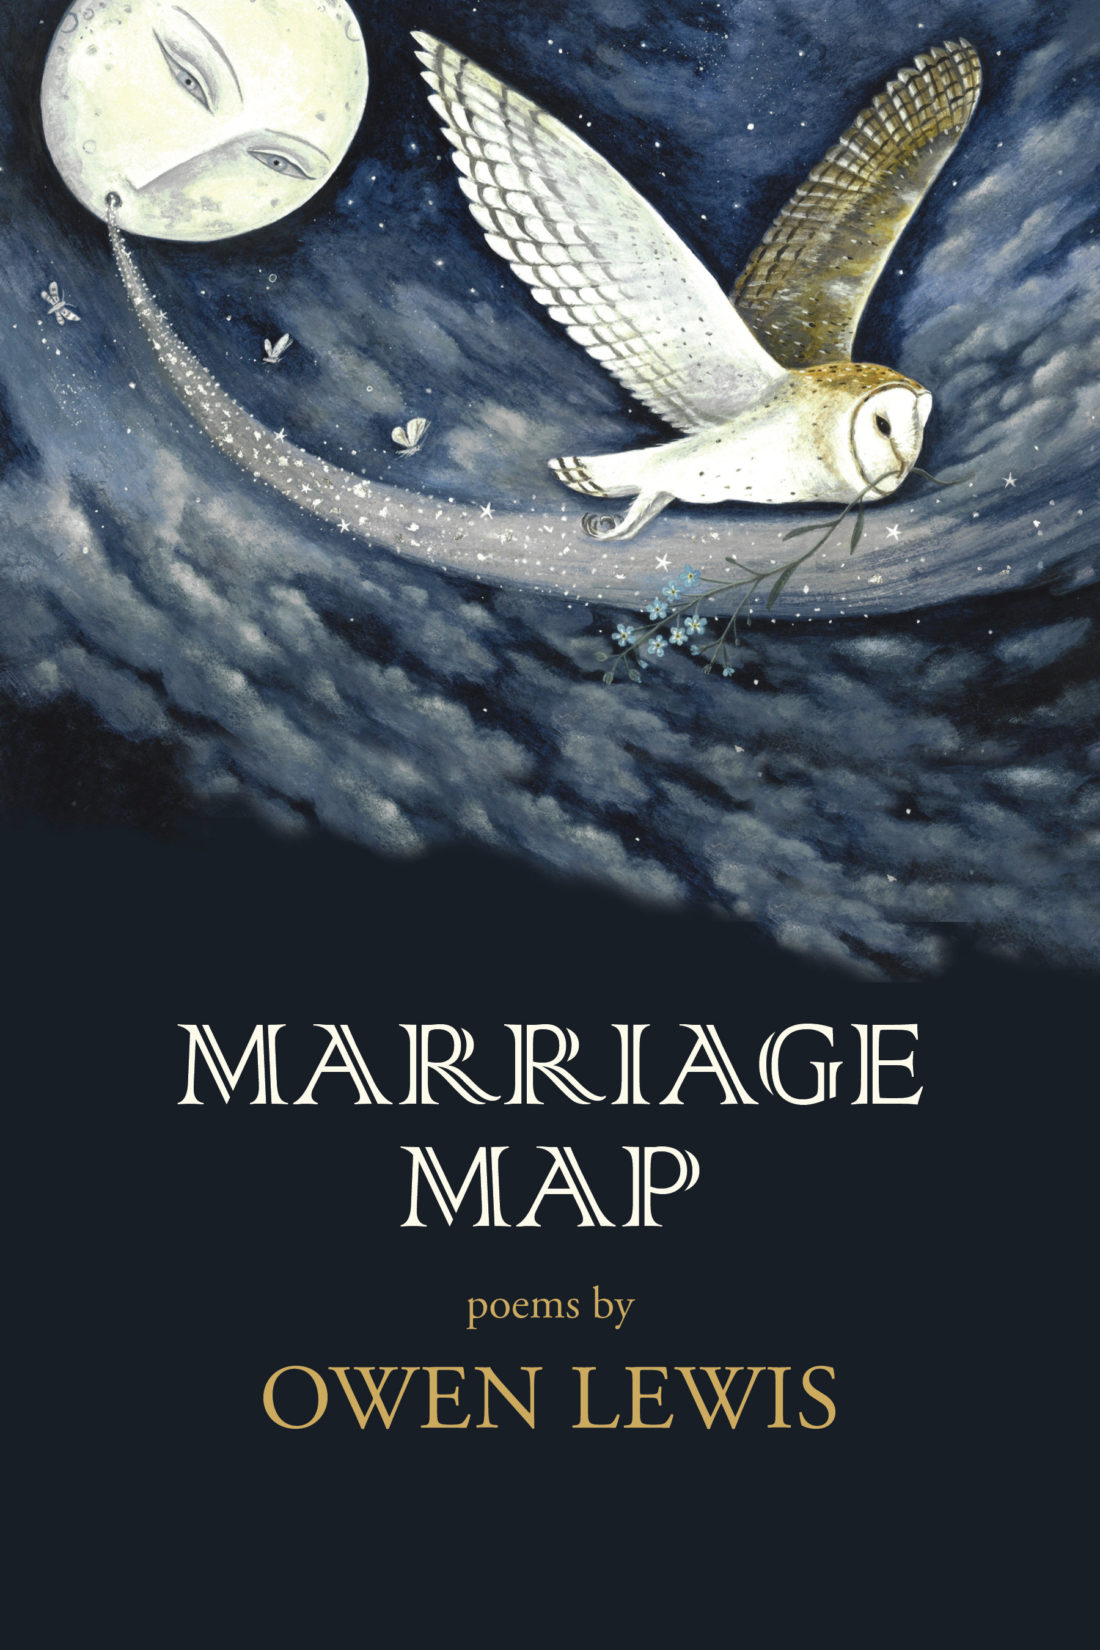 Marriage Map by Owen Lewis